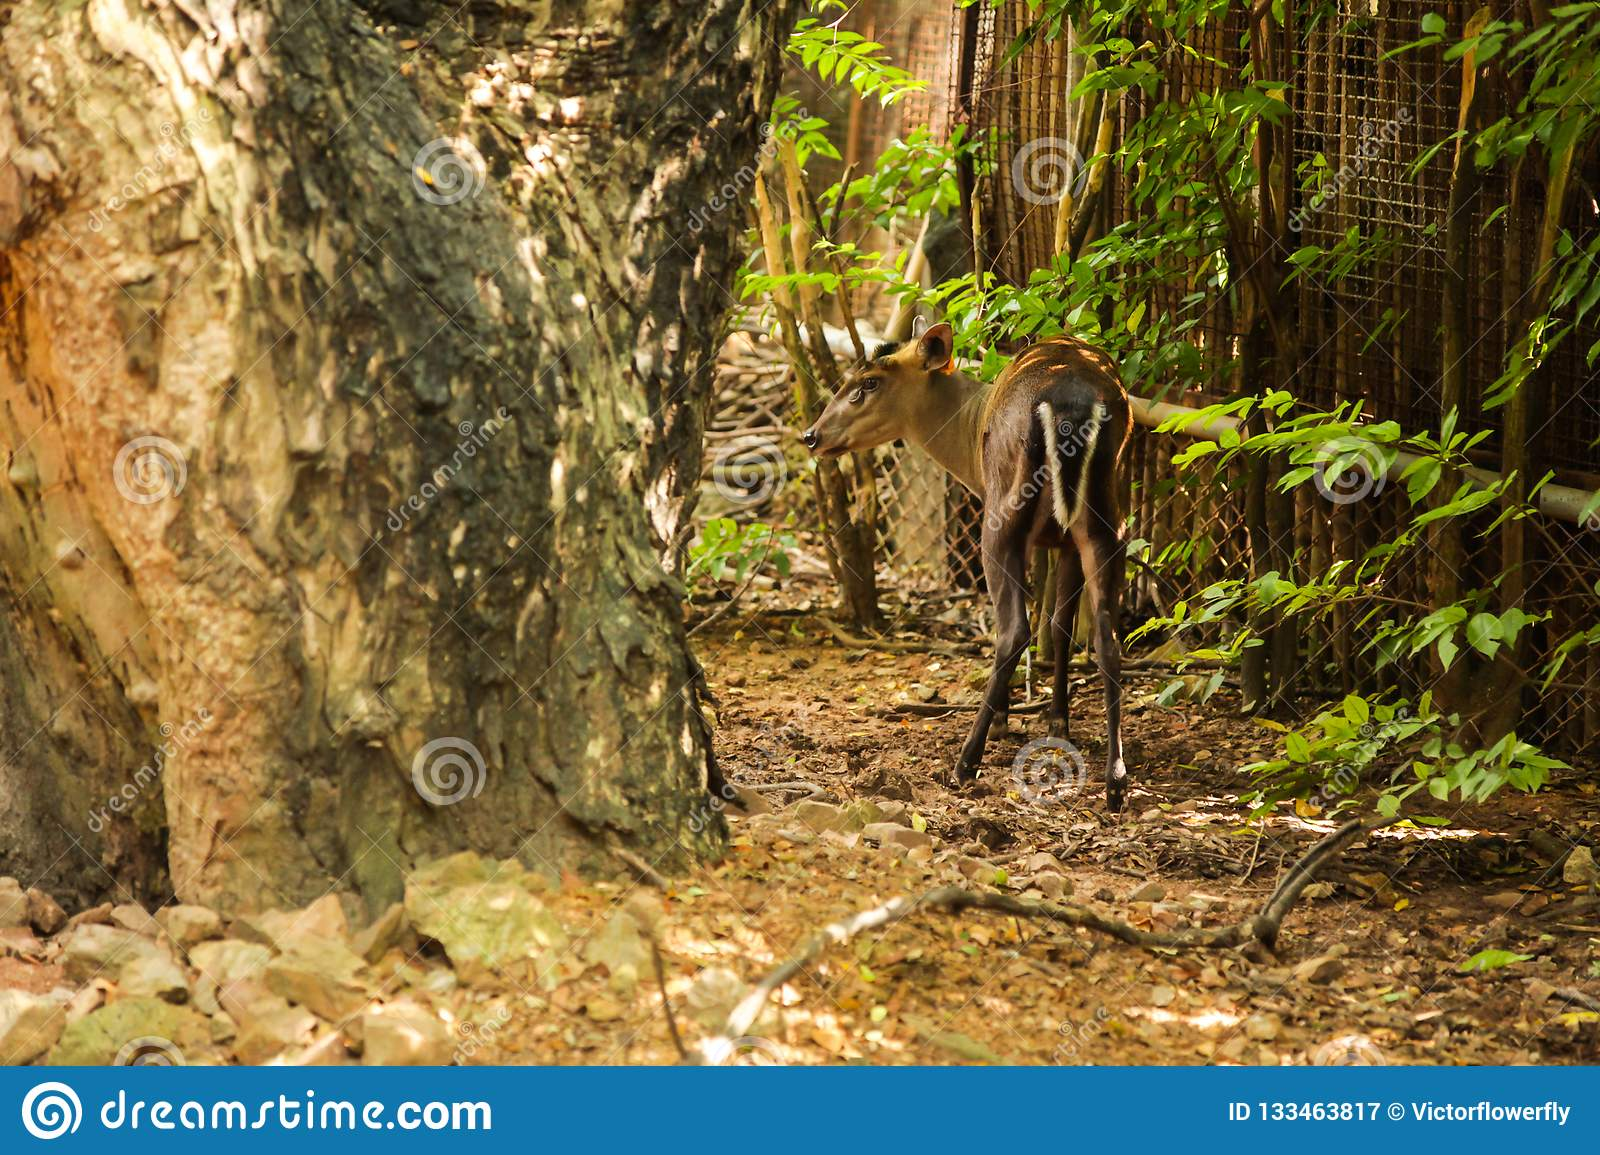 Fea`s Muntjac Tenasserim muntjac is diurnal and solitary, inhabiting upland evergreen, mixed shrub forest with diet of grasses,